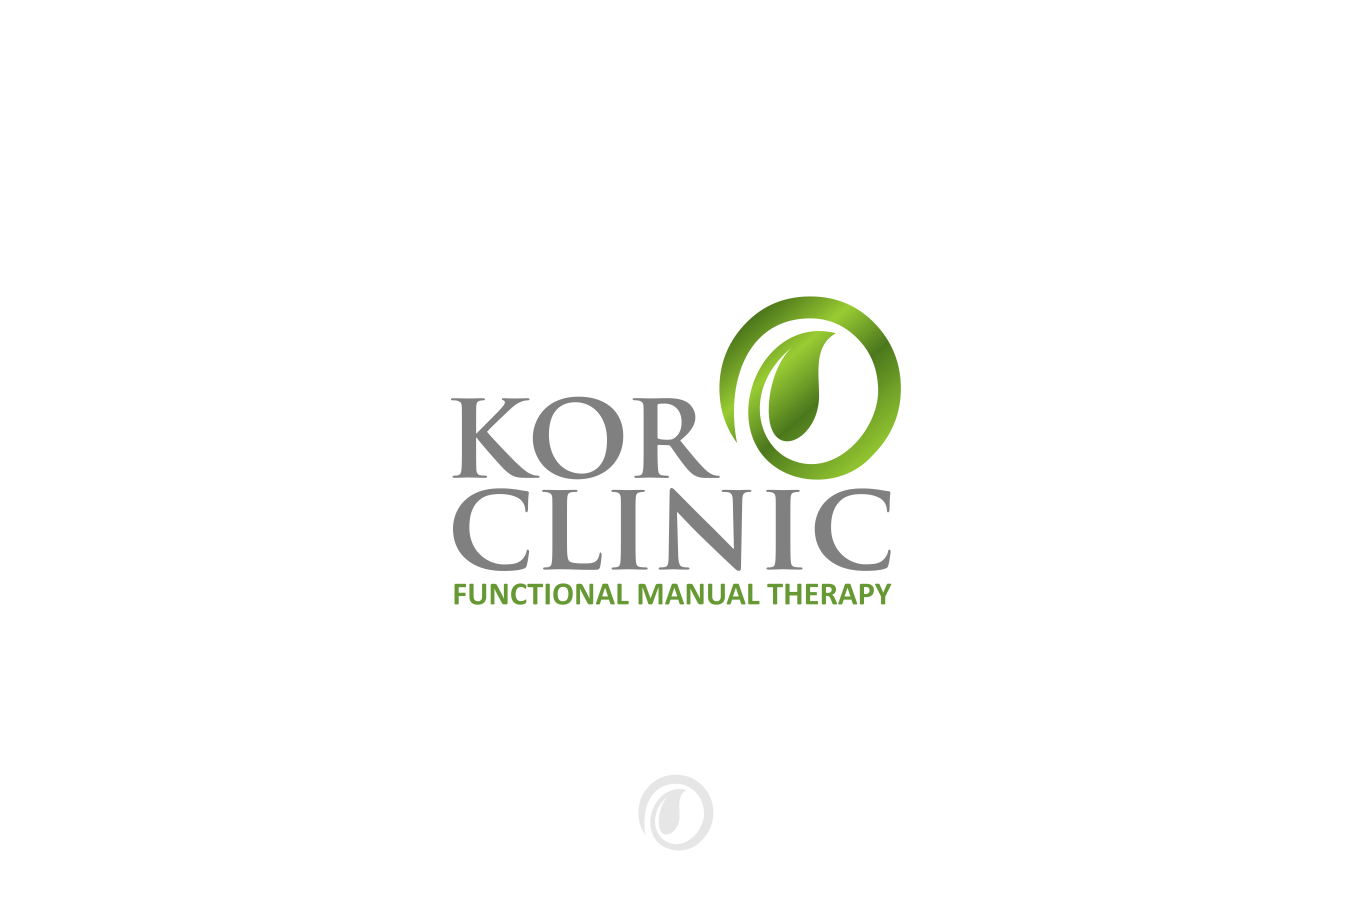 New logo wanted for Kor Clinic